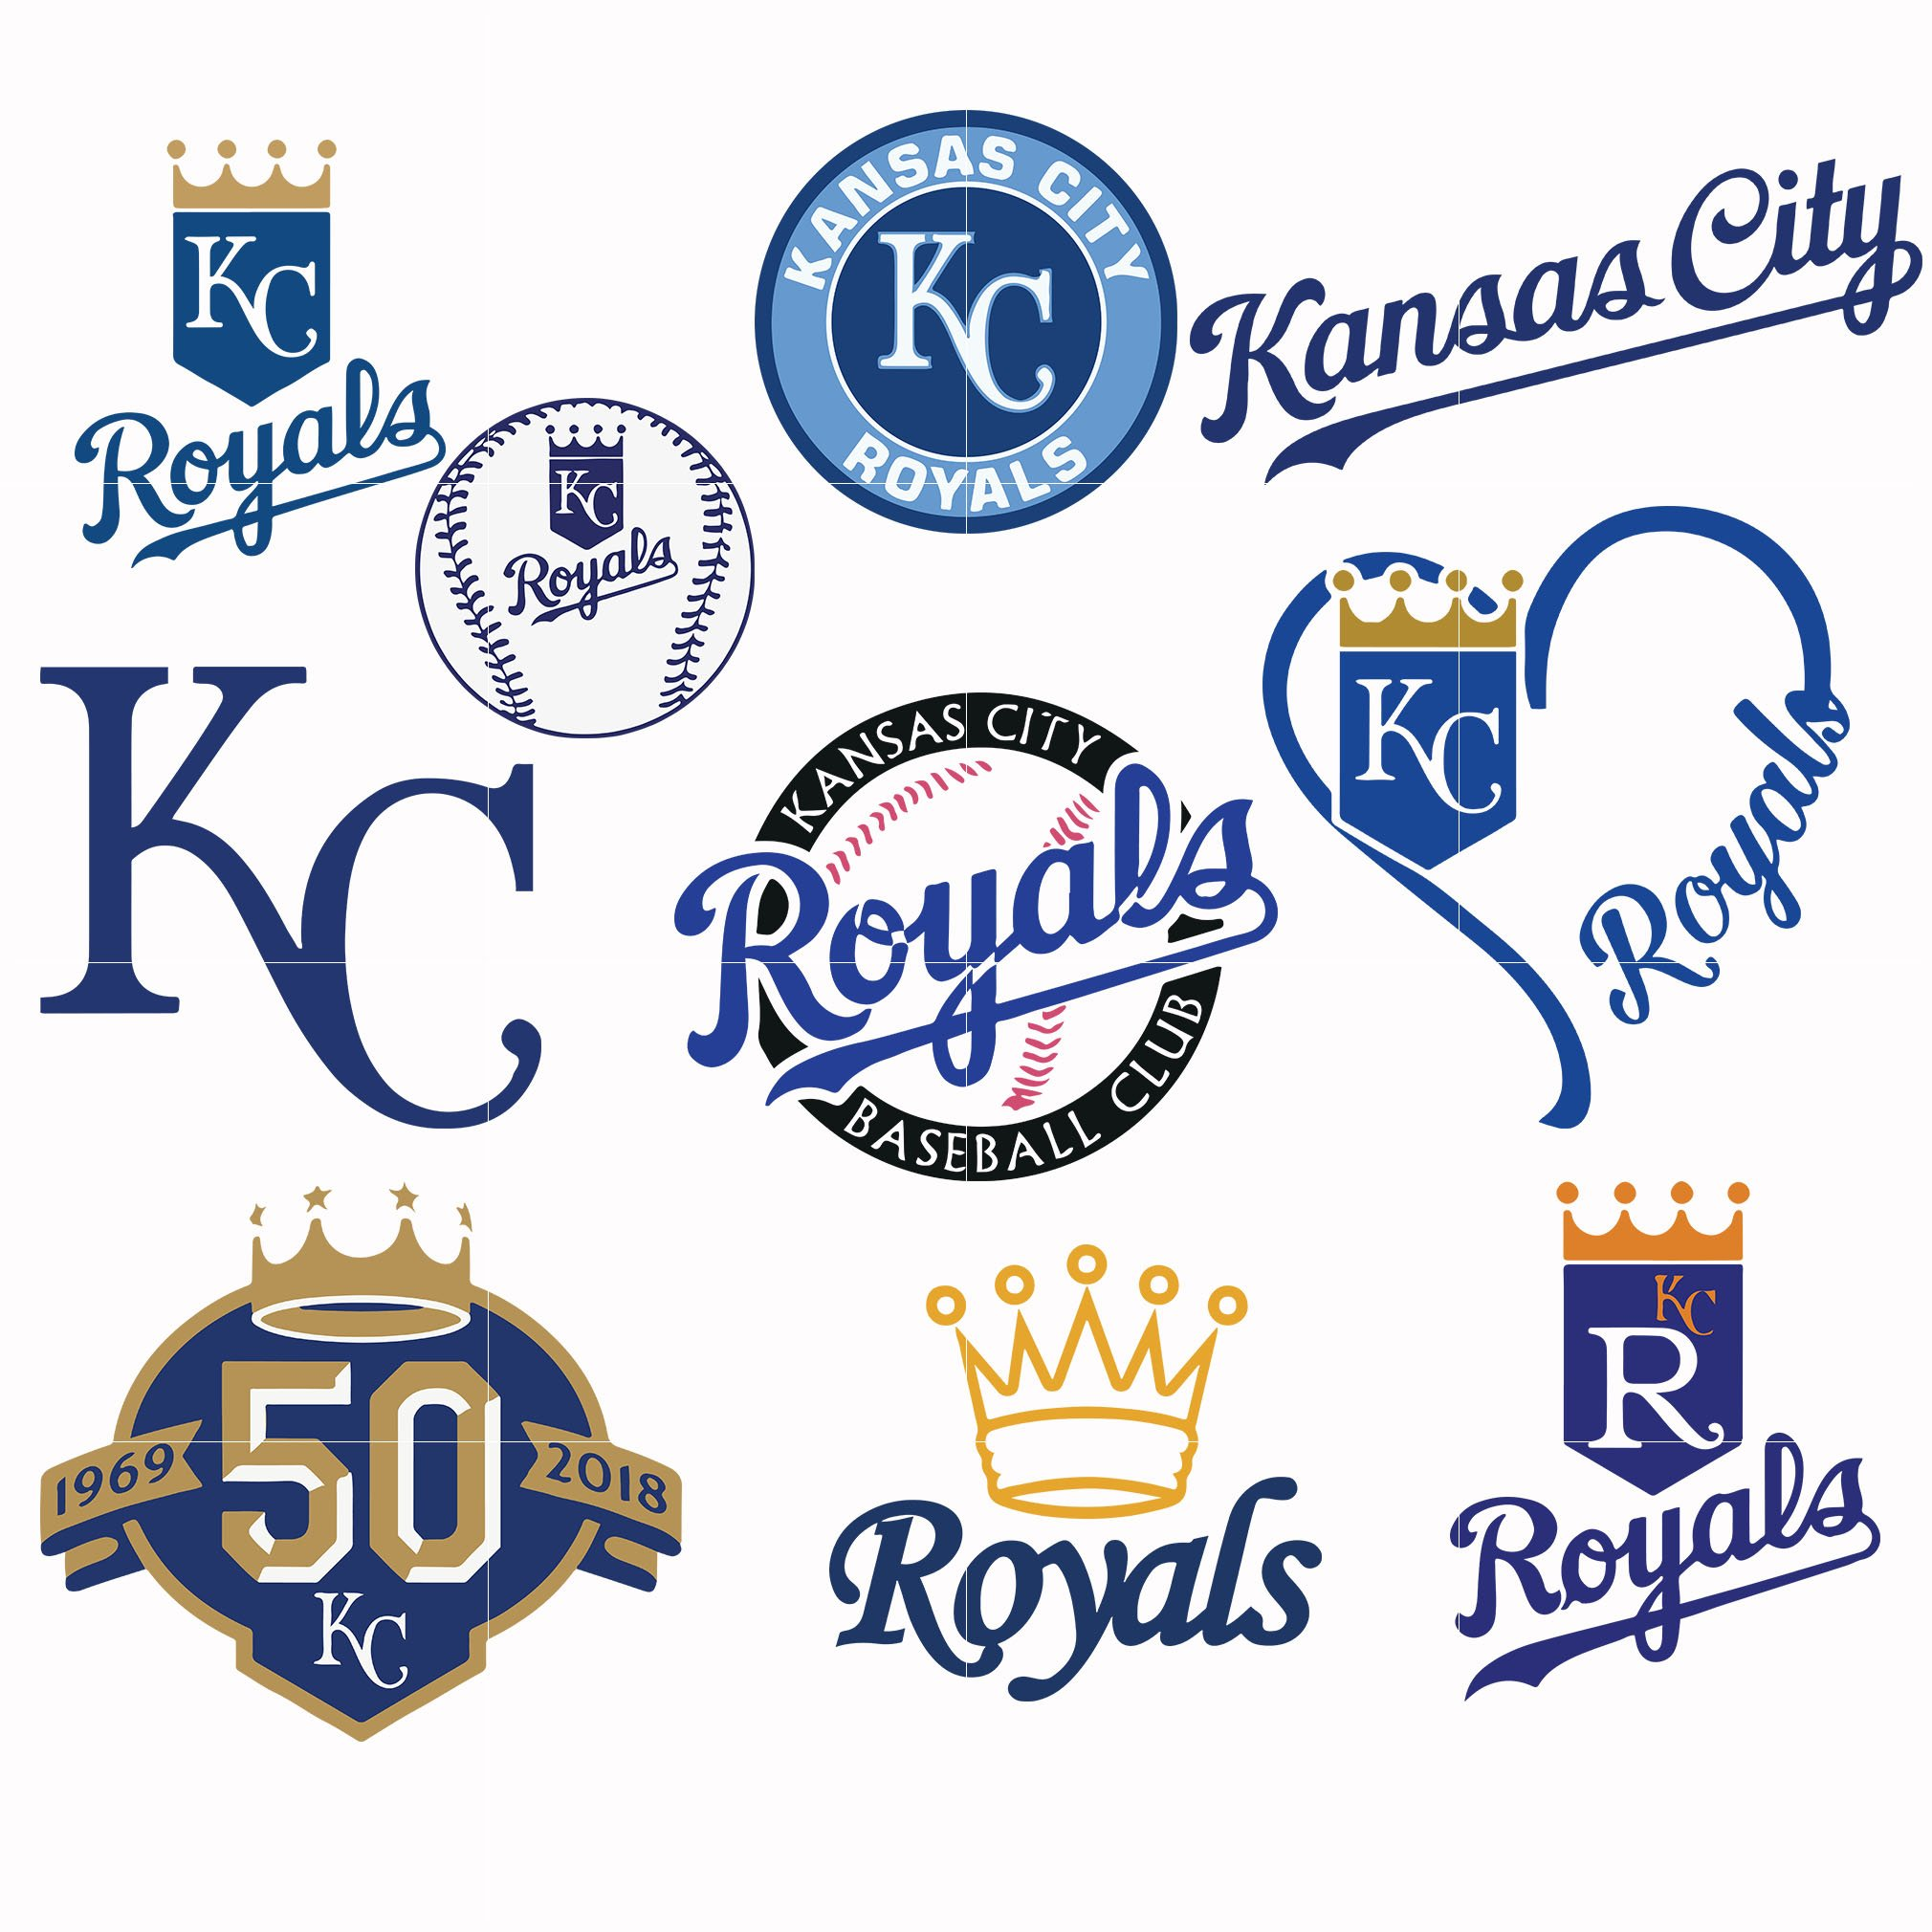 8 Fun Facts About the KC Royals